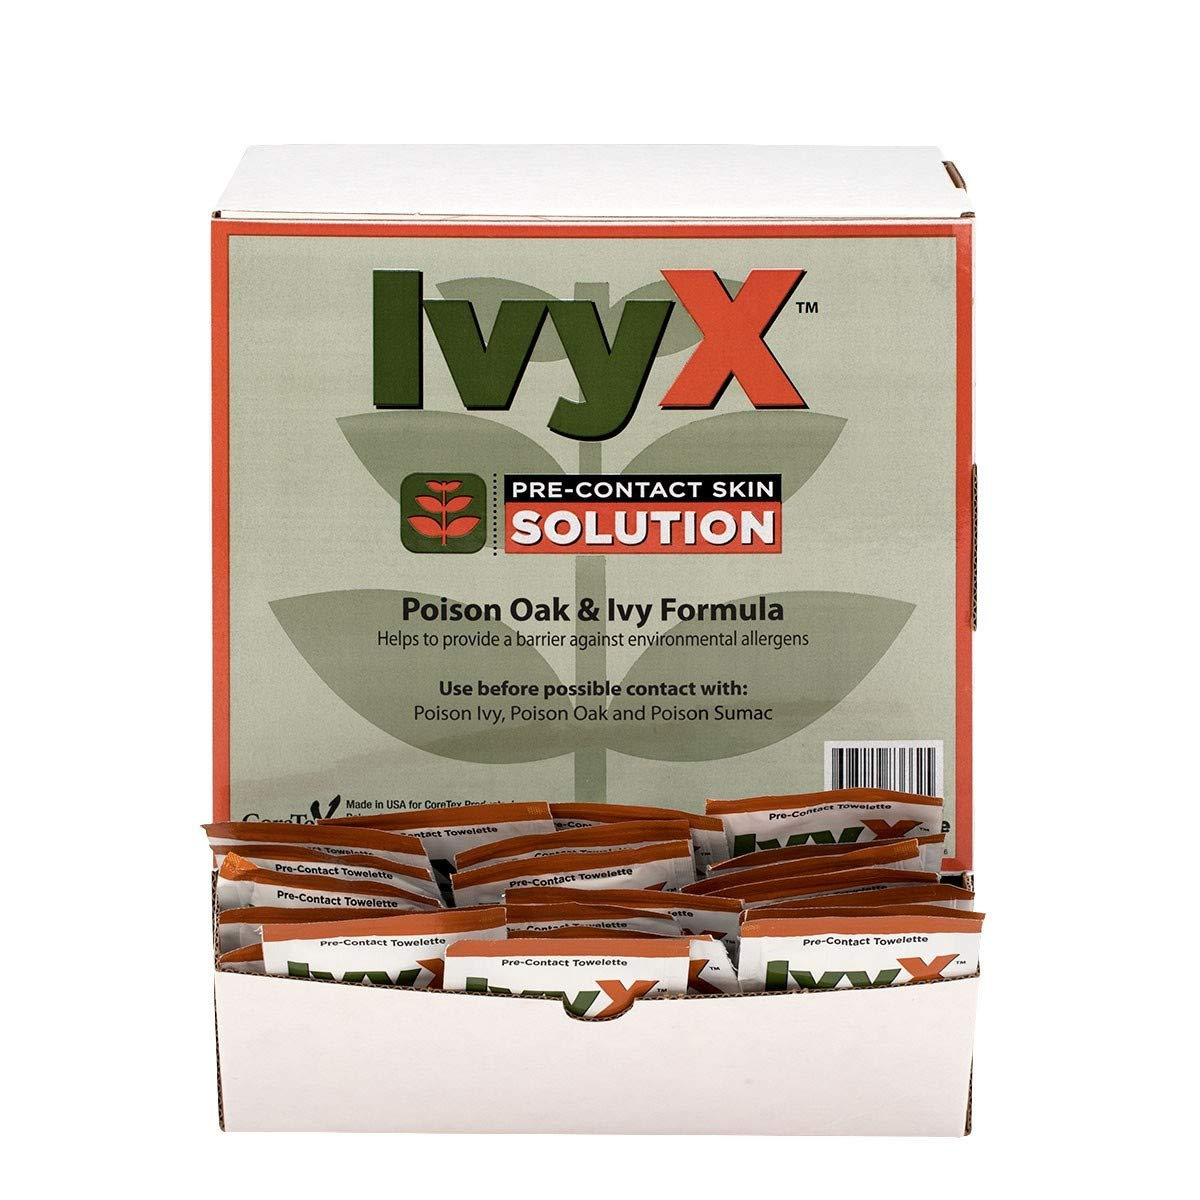 IvyX Pre-Contact Lotion Packets, 50/Box - Skin Protection from Poison Plants Poison Oak & Ivy Formula by Brite Safety